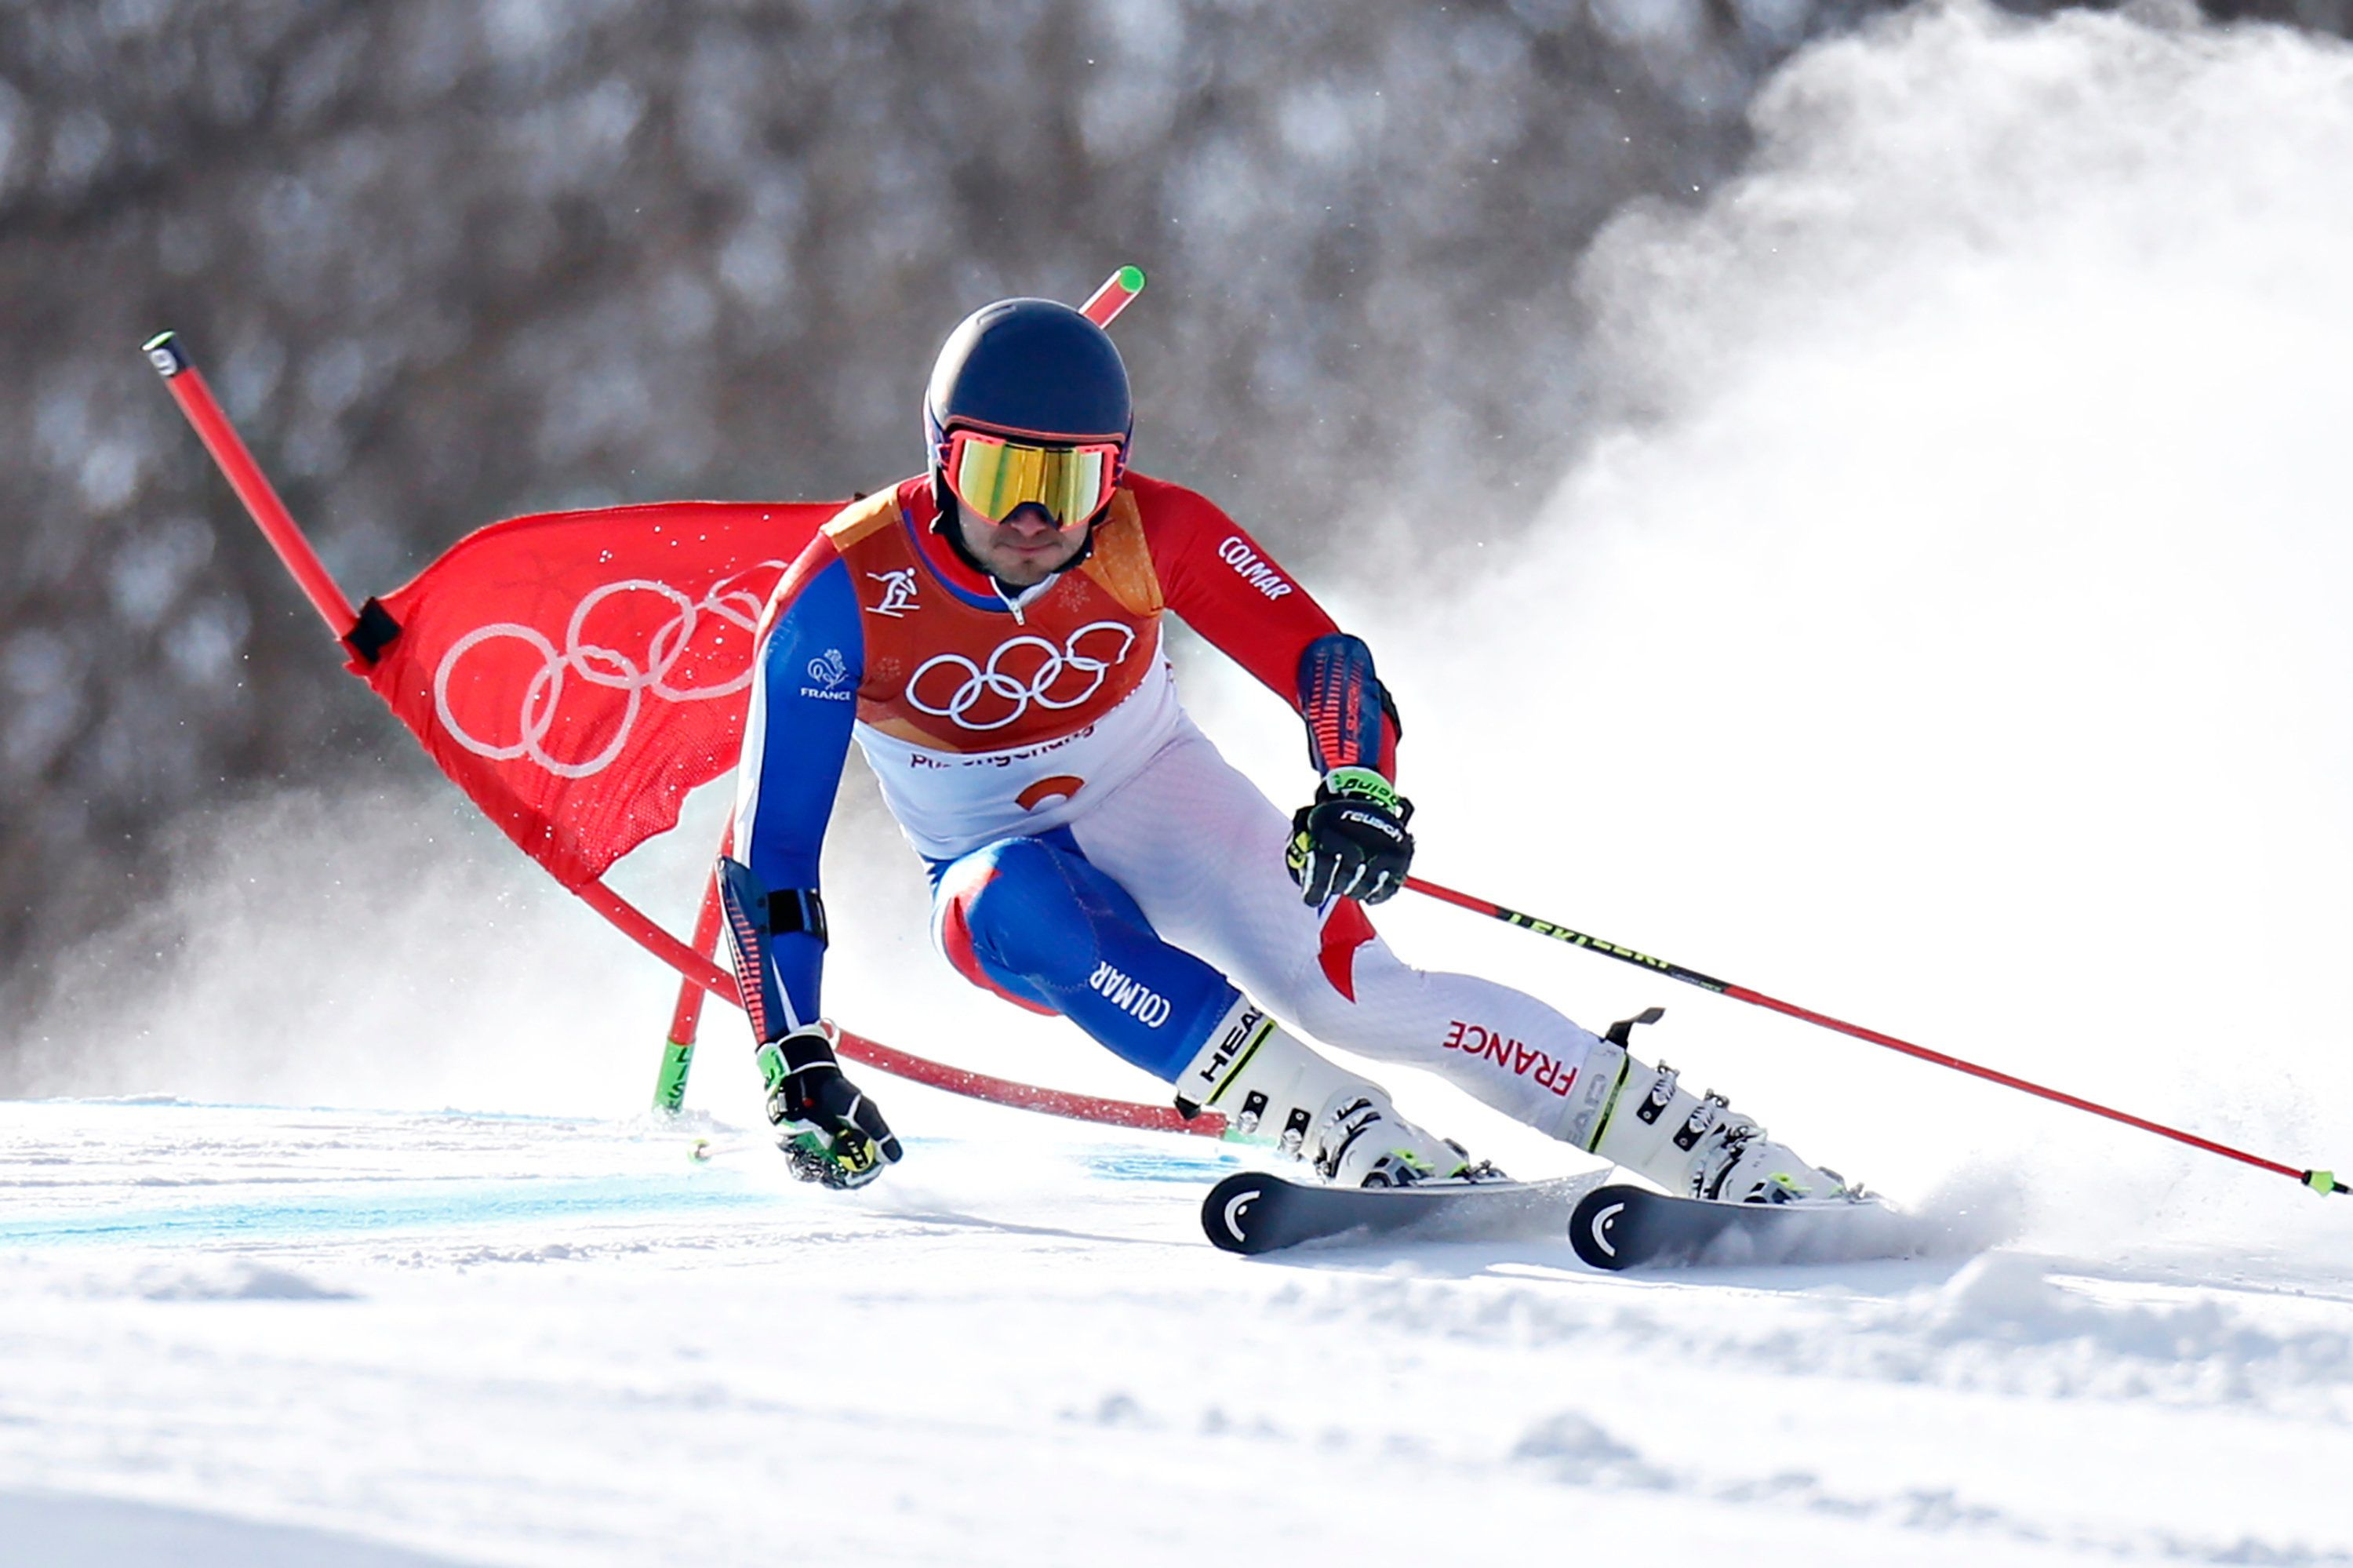 PYEONGCHANG-GUN, SOUTH KOREA - FEBRUARY 18: Mathieu Faivre of France in action during the Alpine Skiing Men's Giant Slalom at Yongpyong Alpine Centre on February 18, 2018 in Pyeongchang-gun, South Korea. (Photo by Alexis Boichard/Agence Zoom/Getty Images)